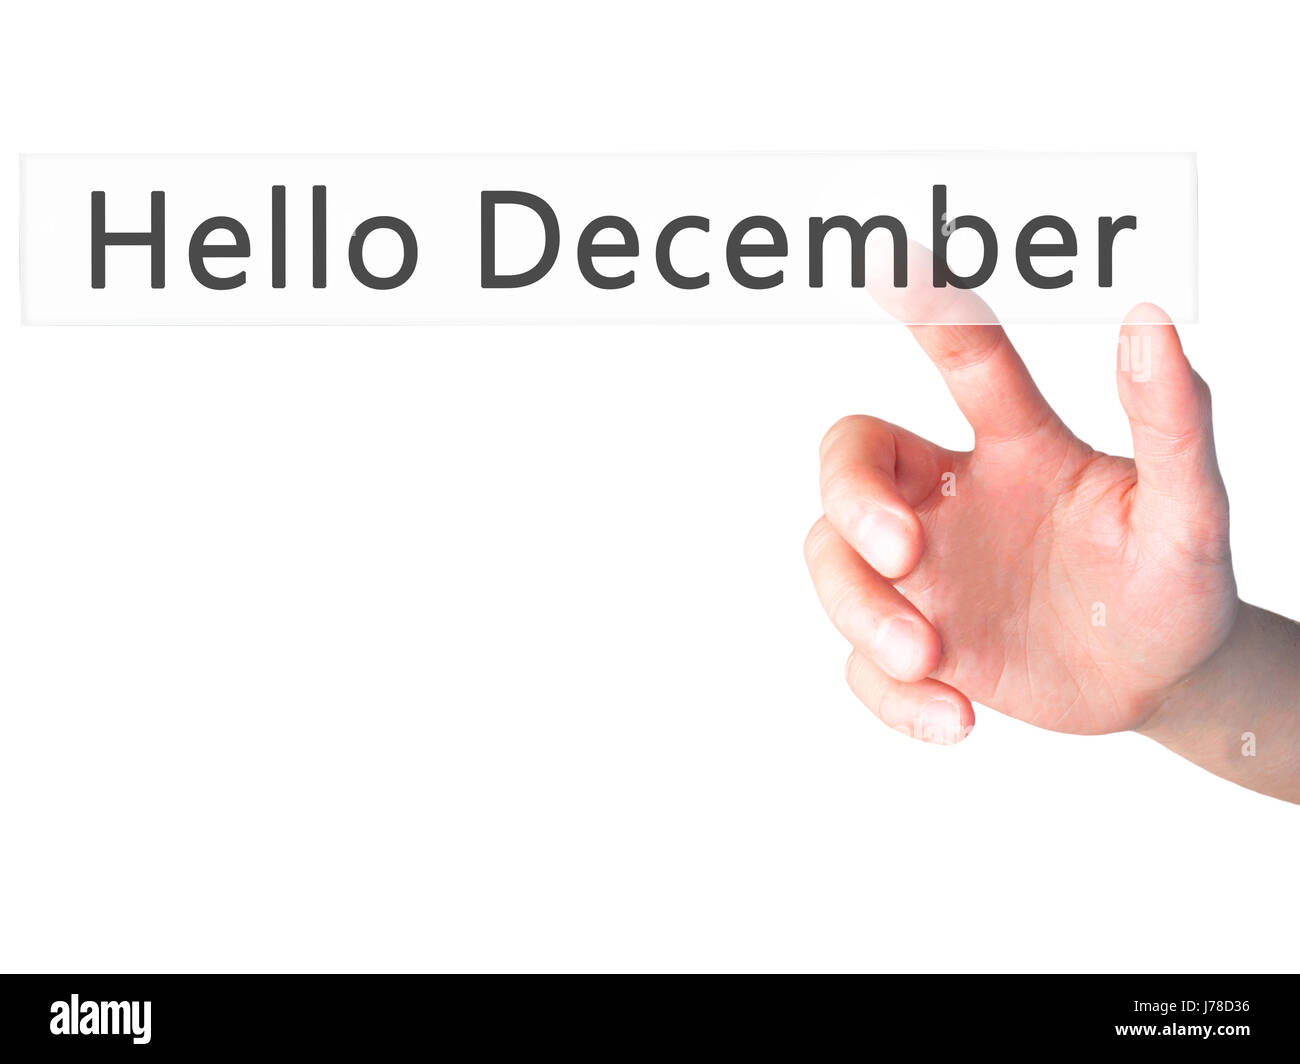 Hello December - Hand pressing a button on blurred background concept . Business, technology, internet concept. - Stock Image